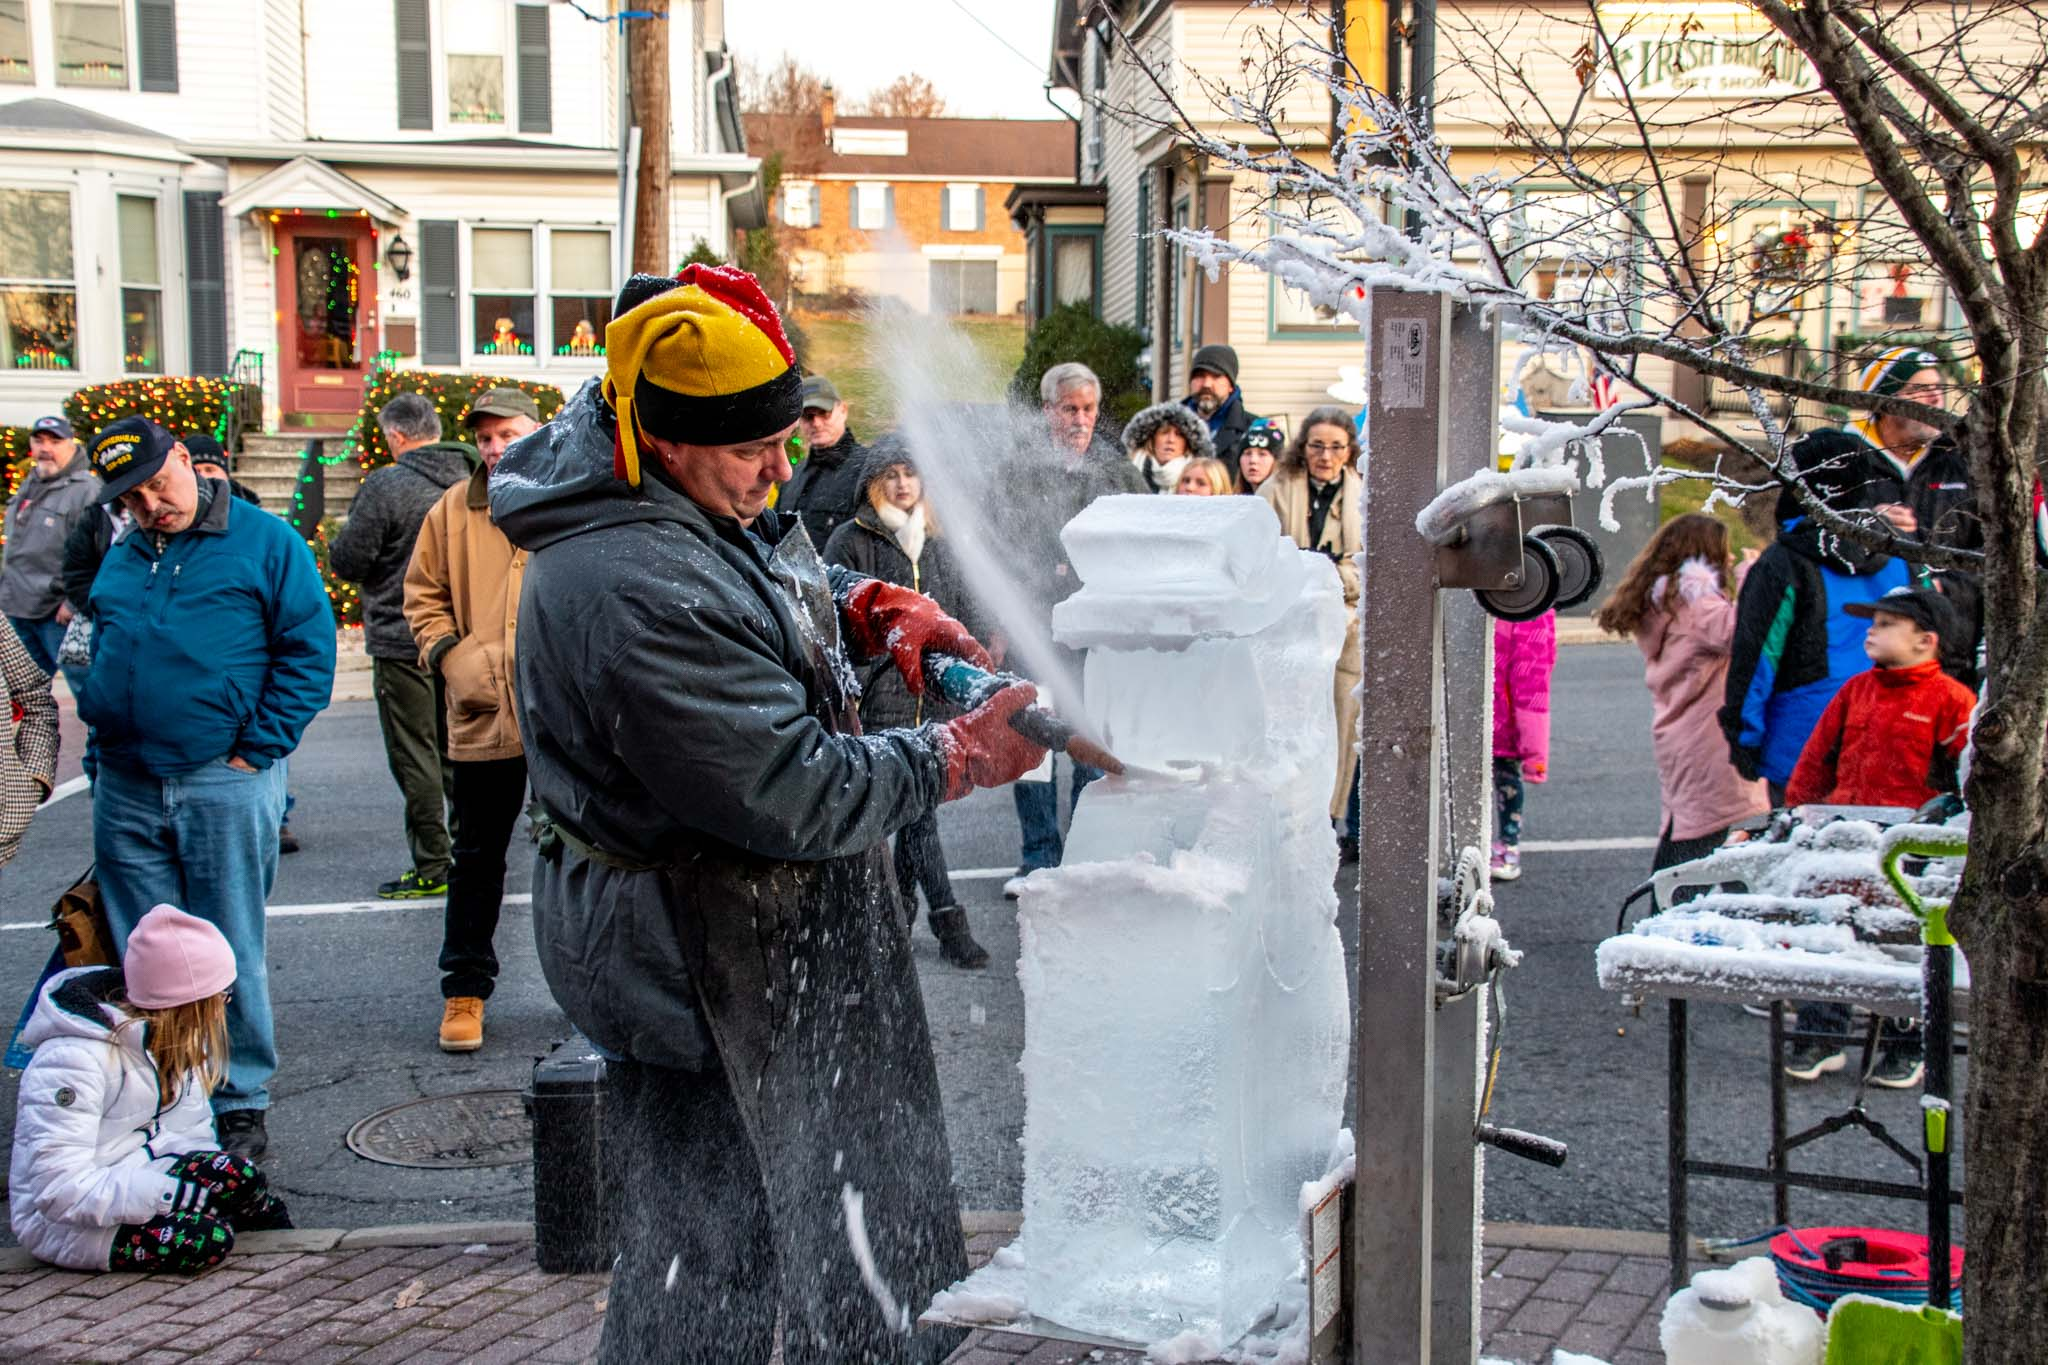 Man carving ice block into a snowman with a crowd looking on